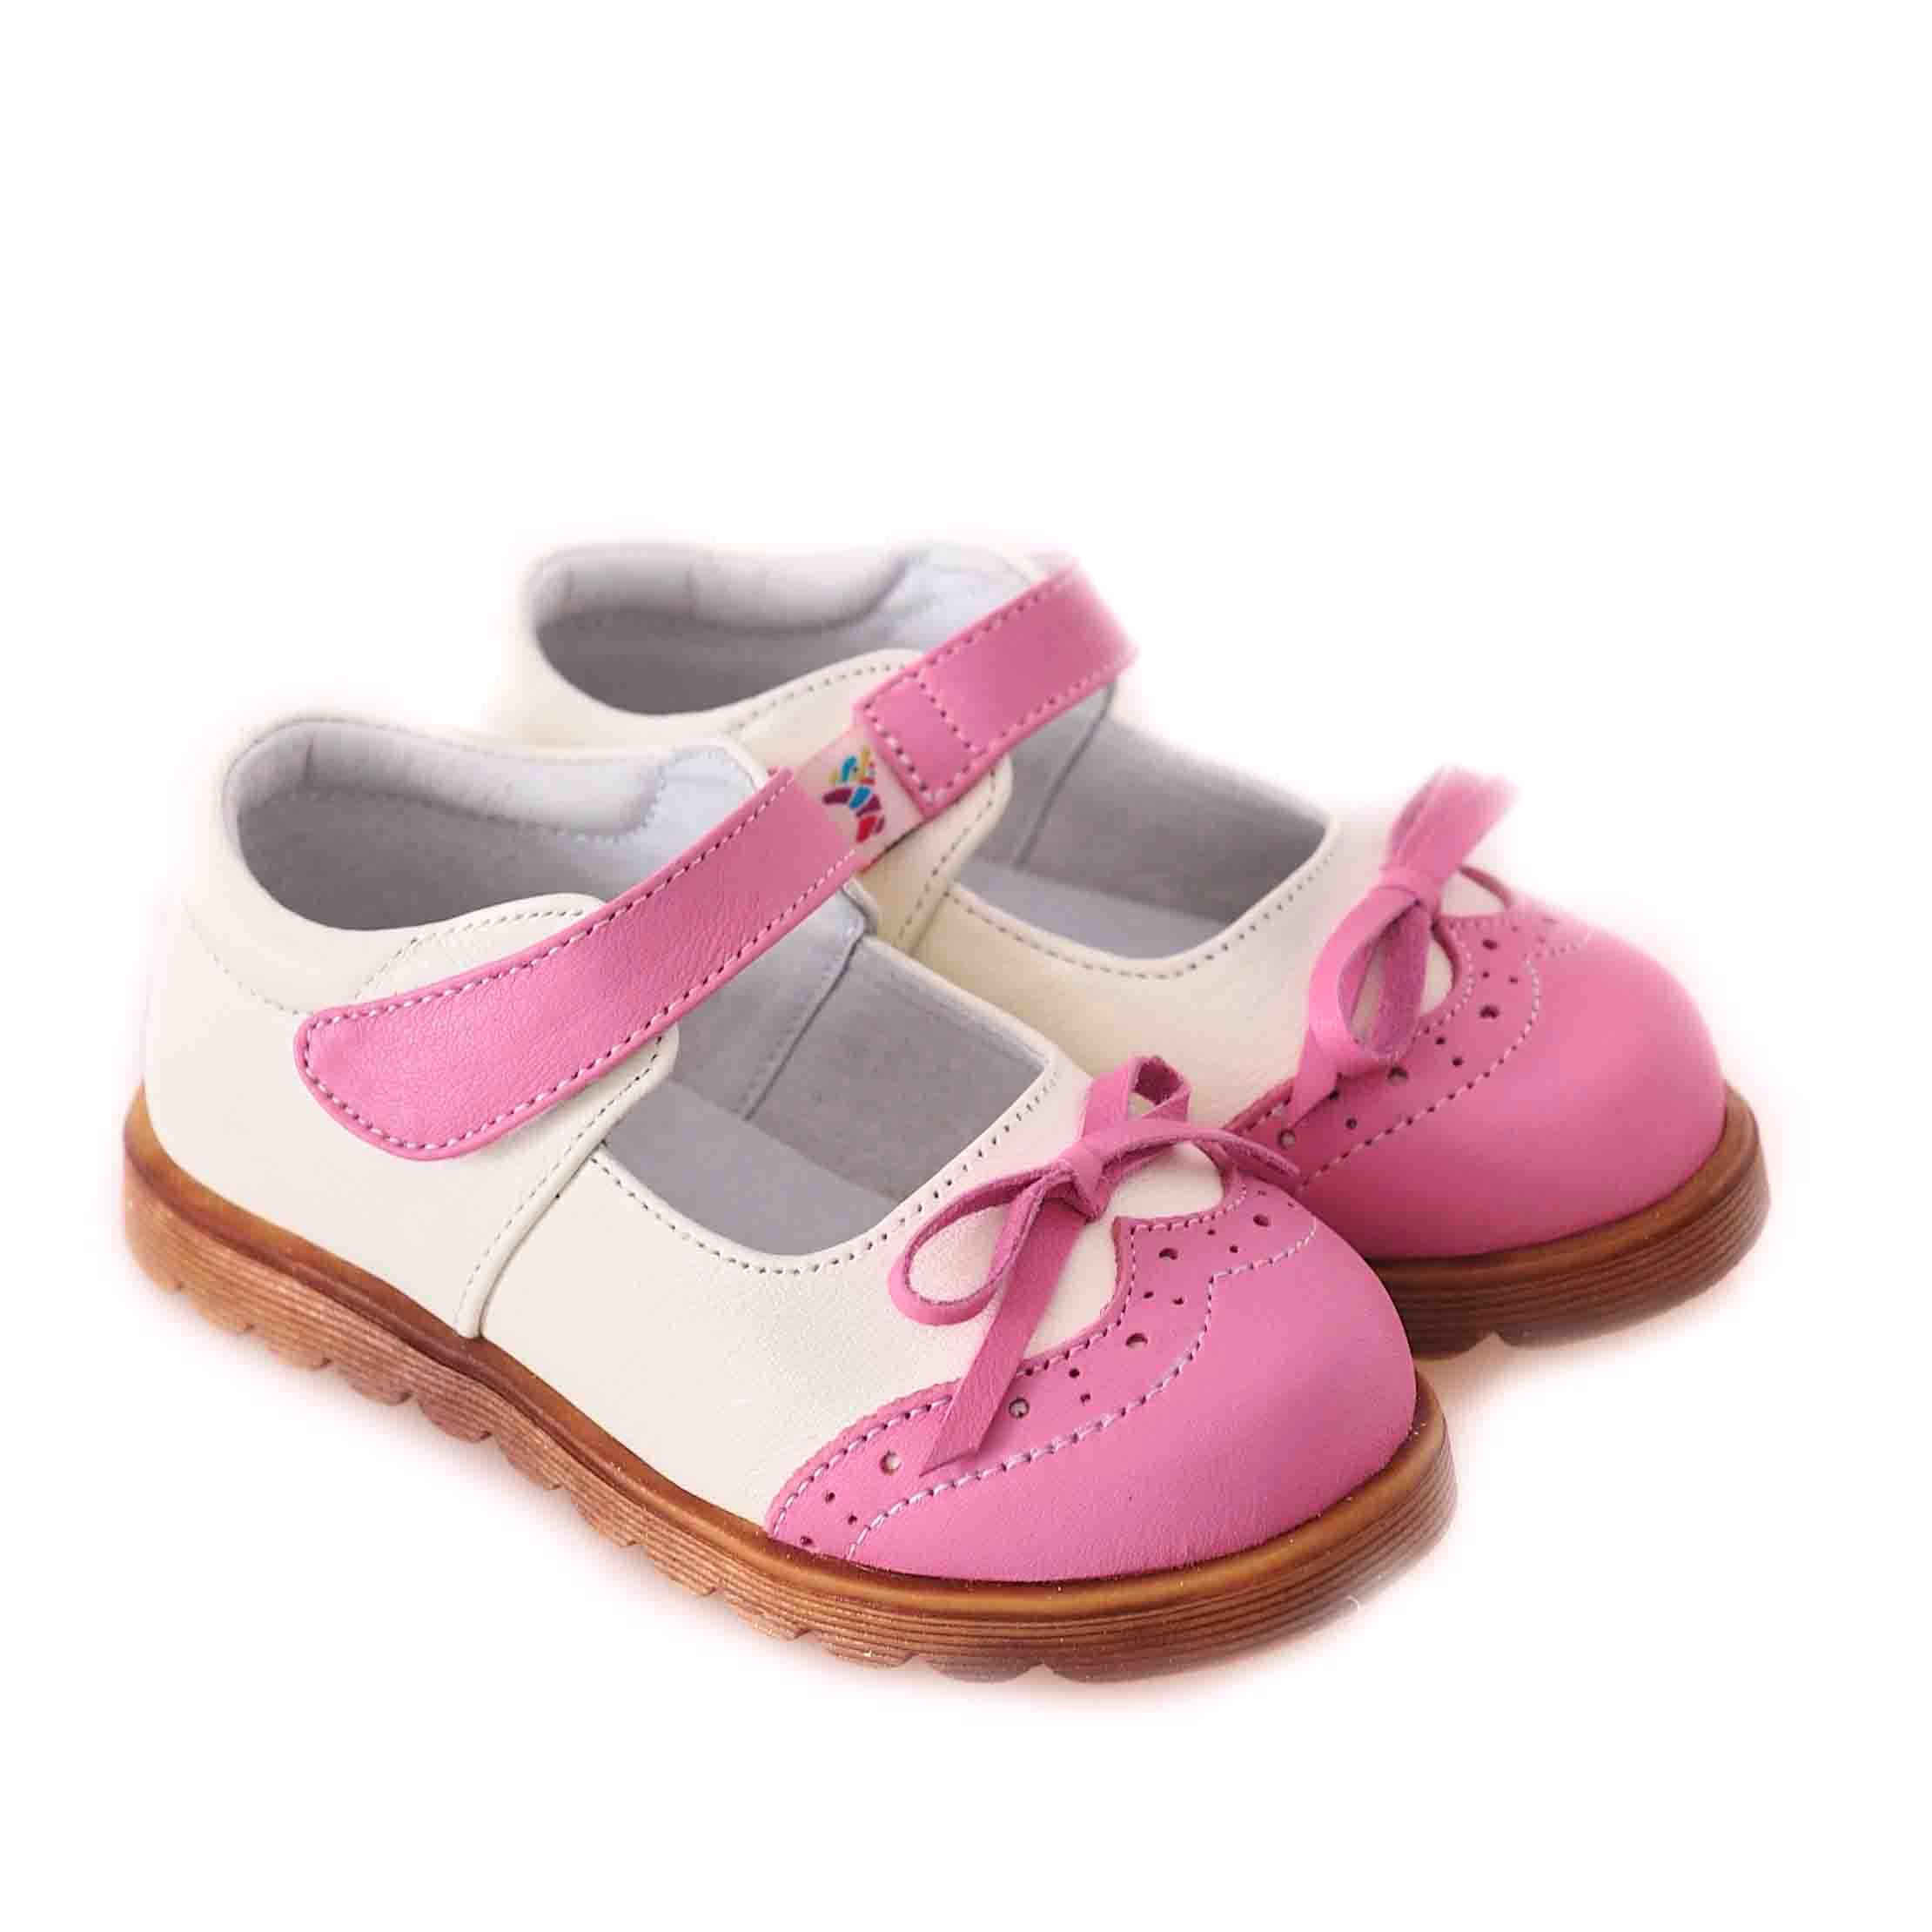 kids shoes caroch 100% genuine leather kids girl shoes c-3301cp (c-3301cp) GUMMIHA